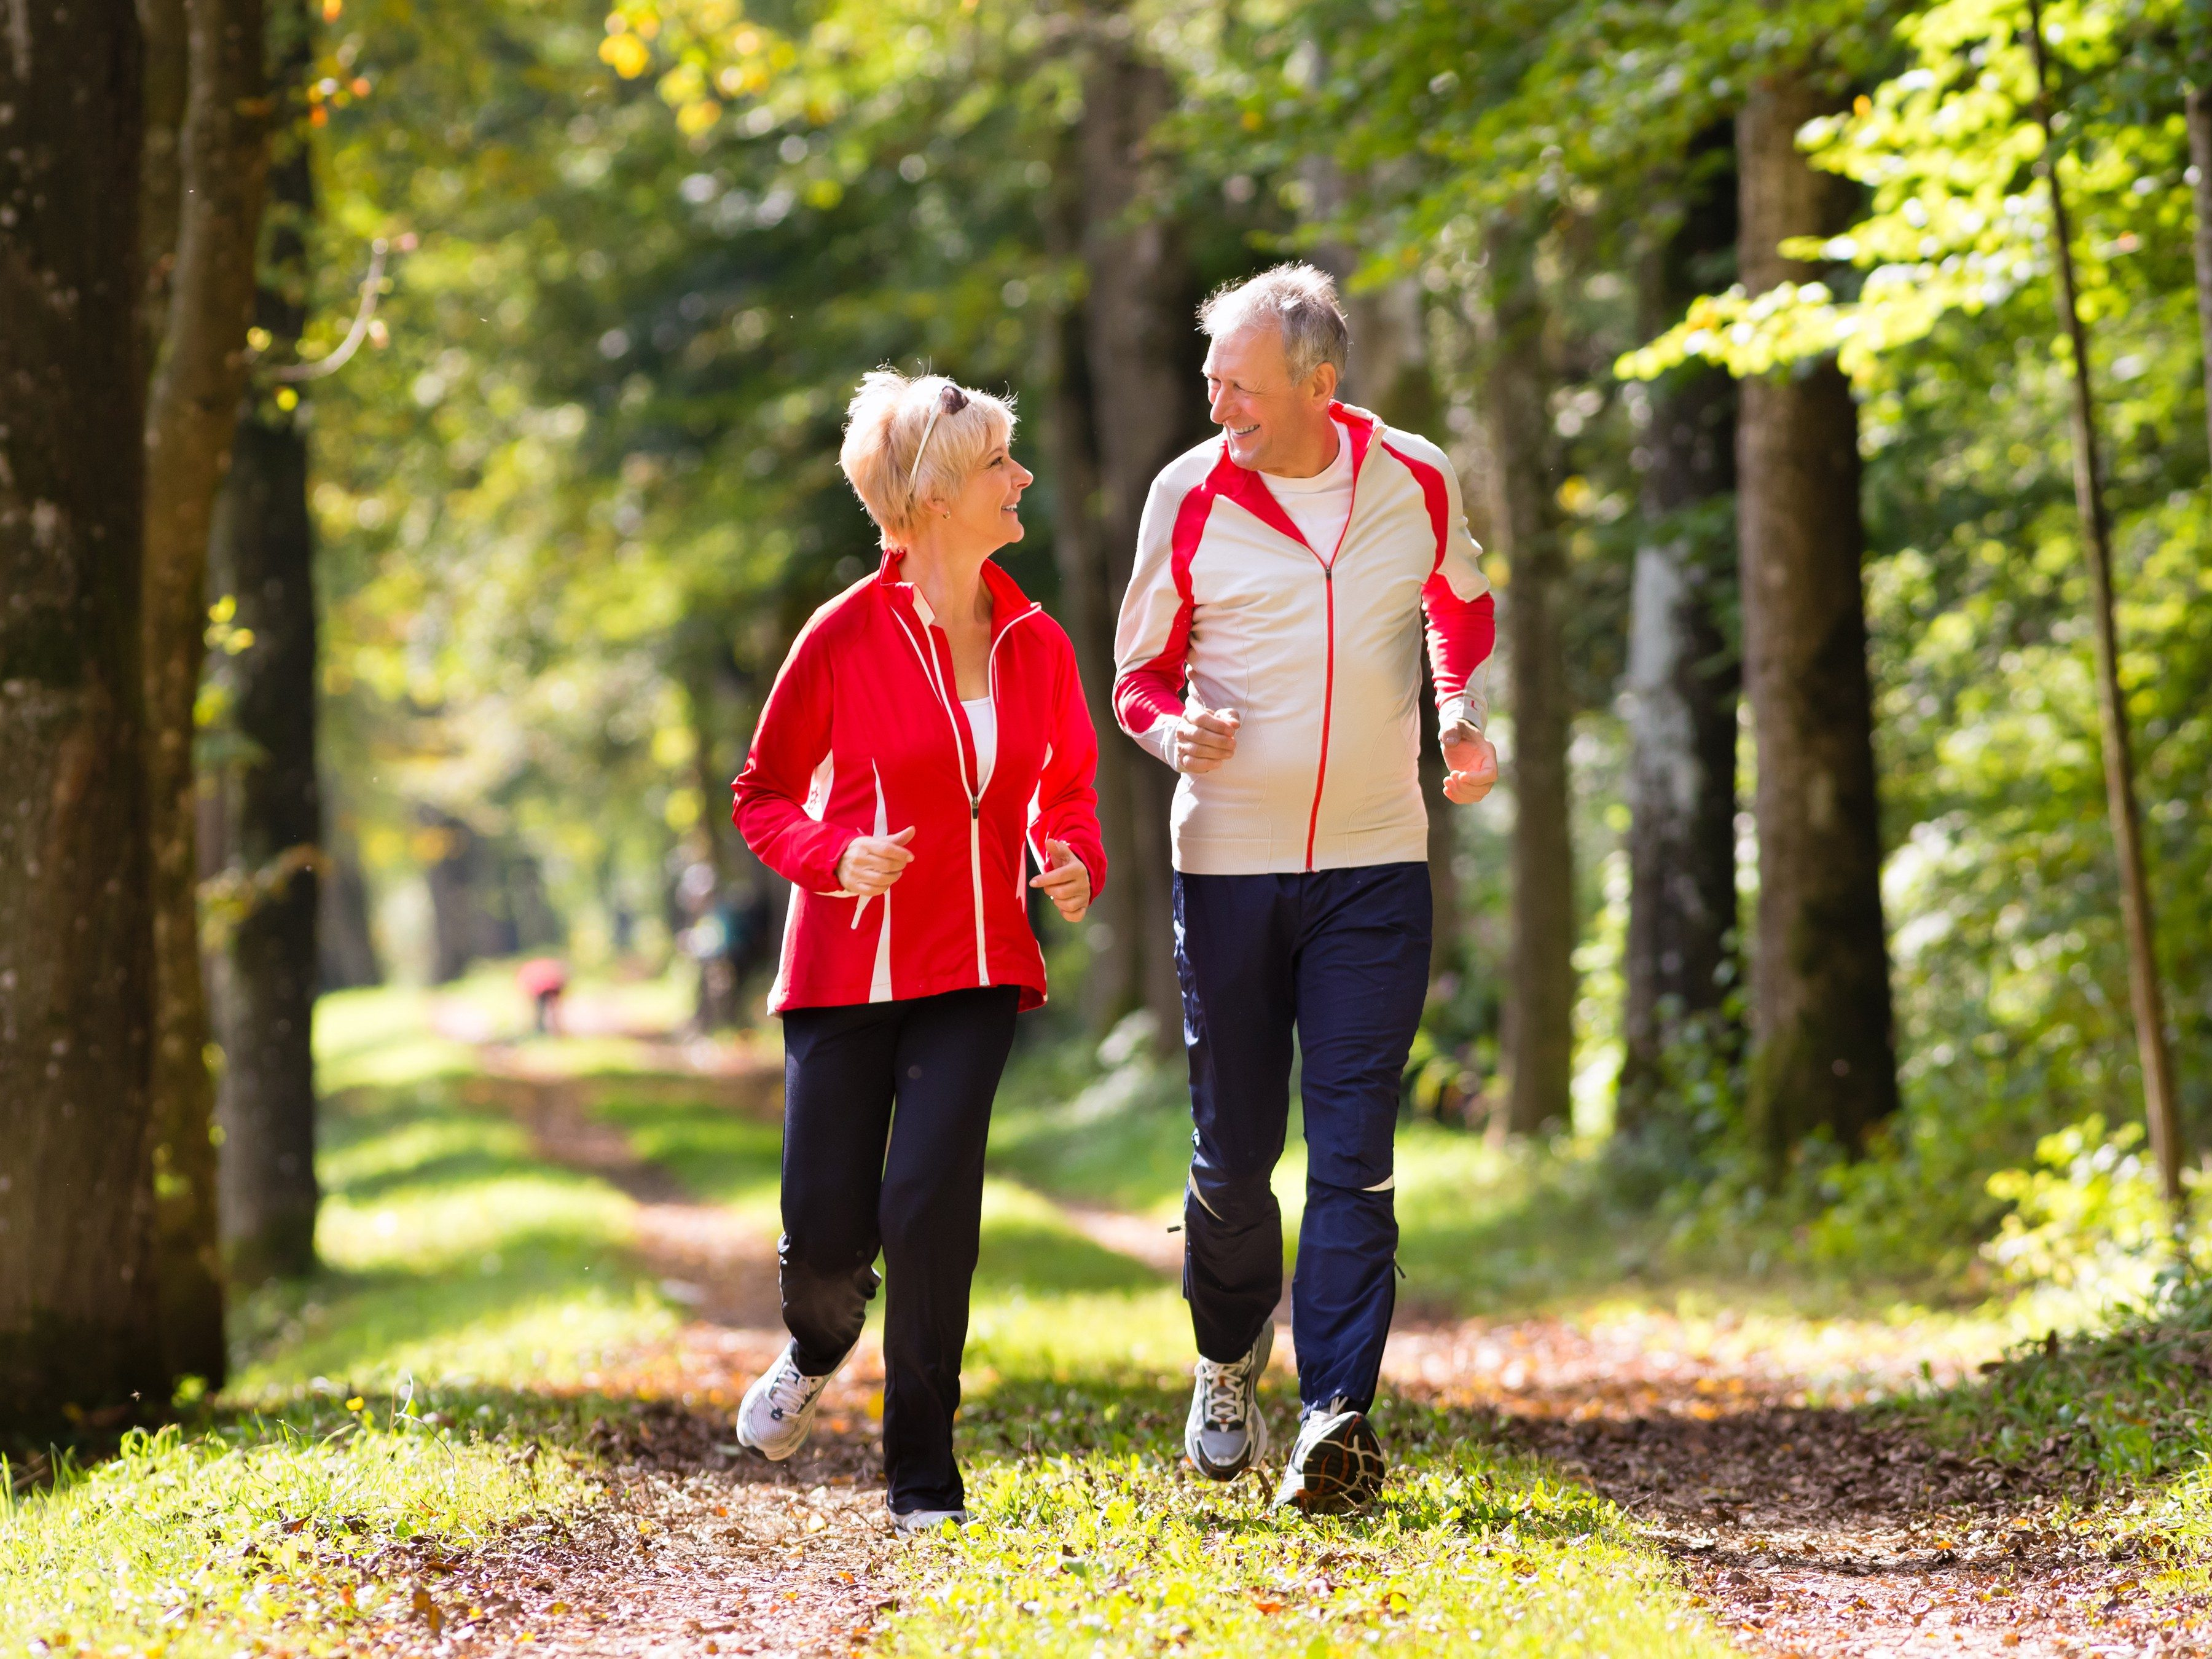 2. Prevent memory loss with exercise